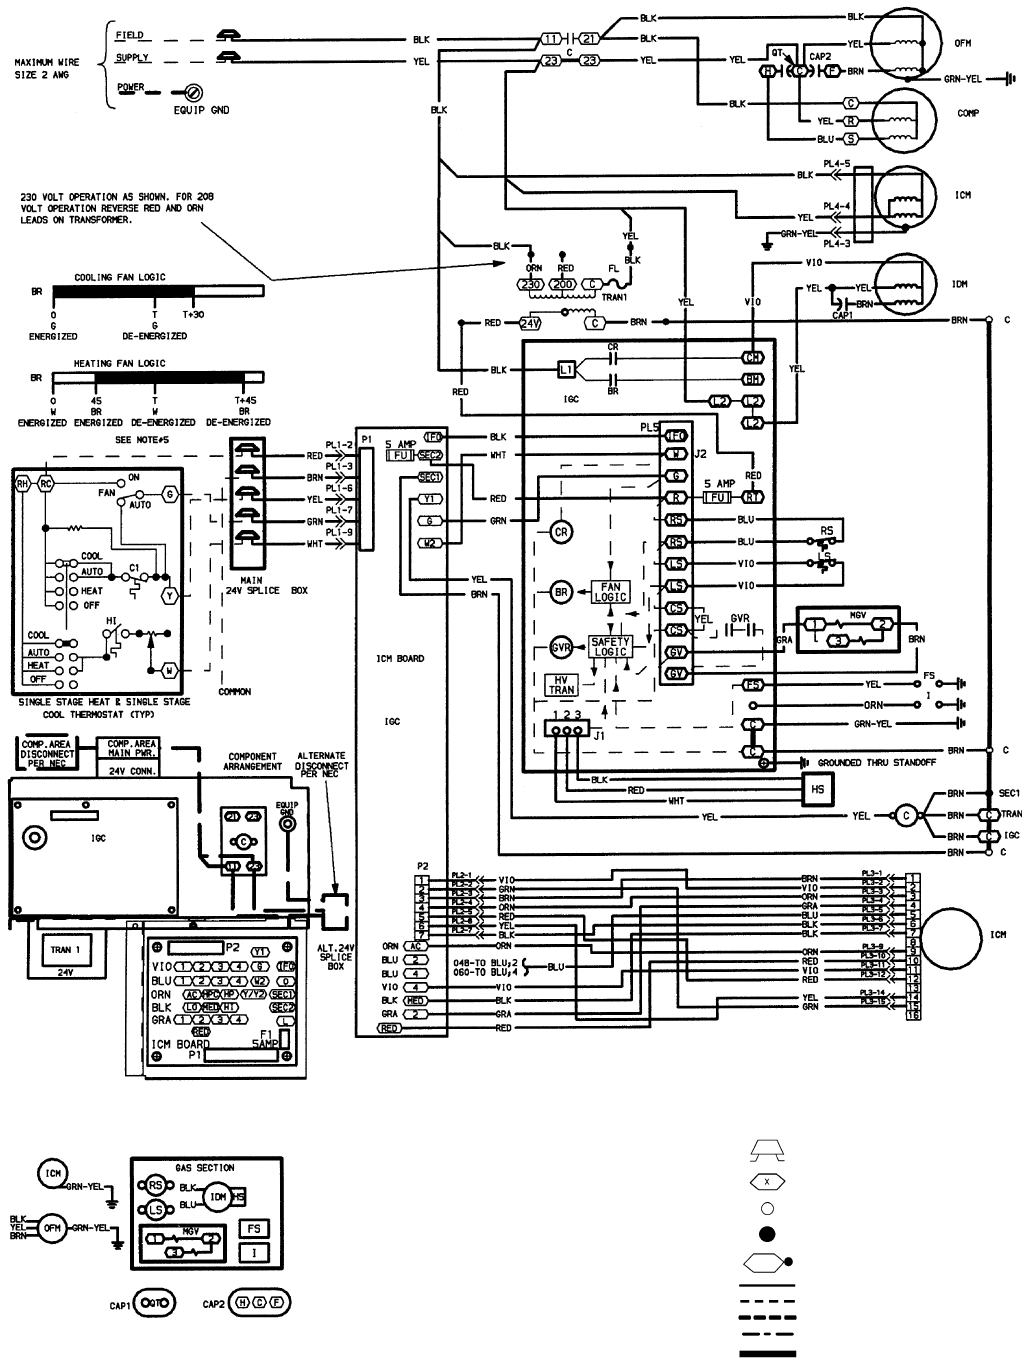 Diagram Basic Hvac Indoor Blower Fan Capacitor Wiring